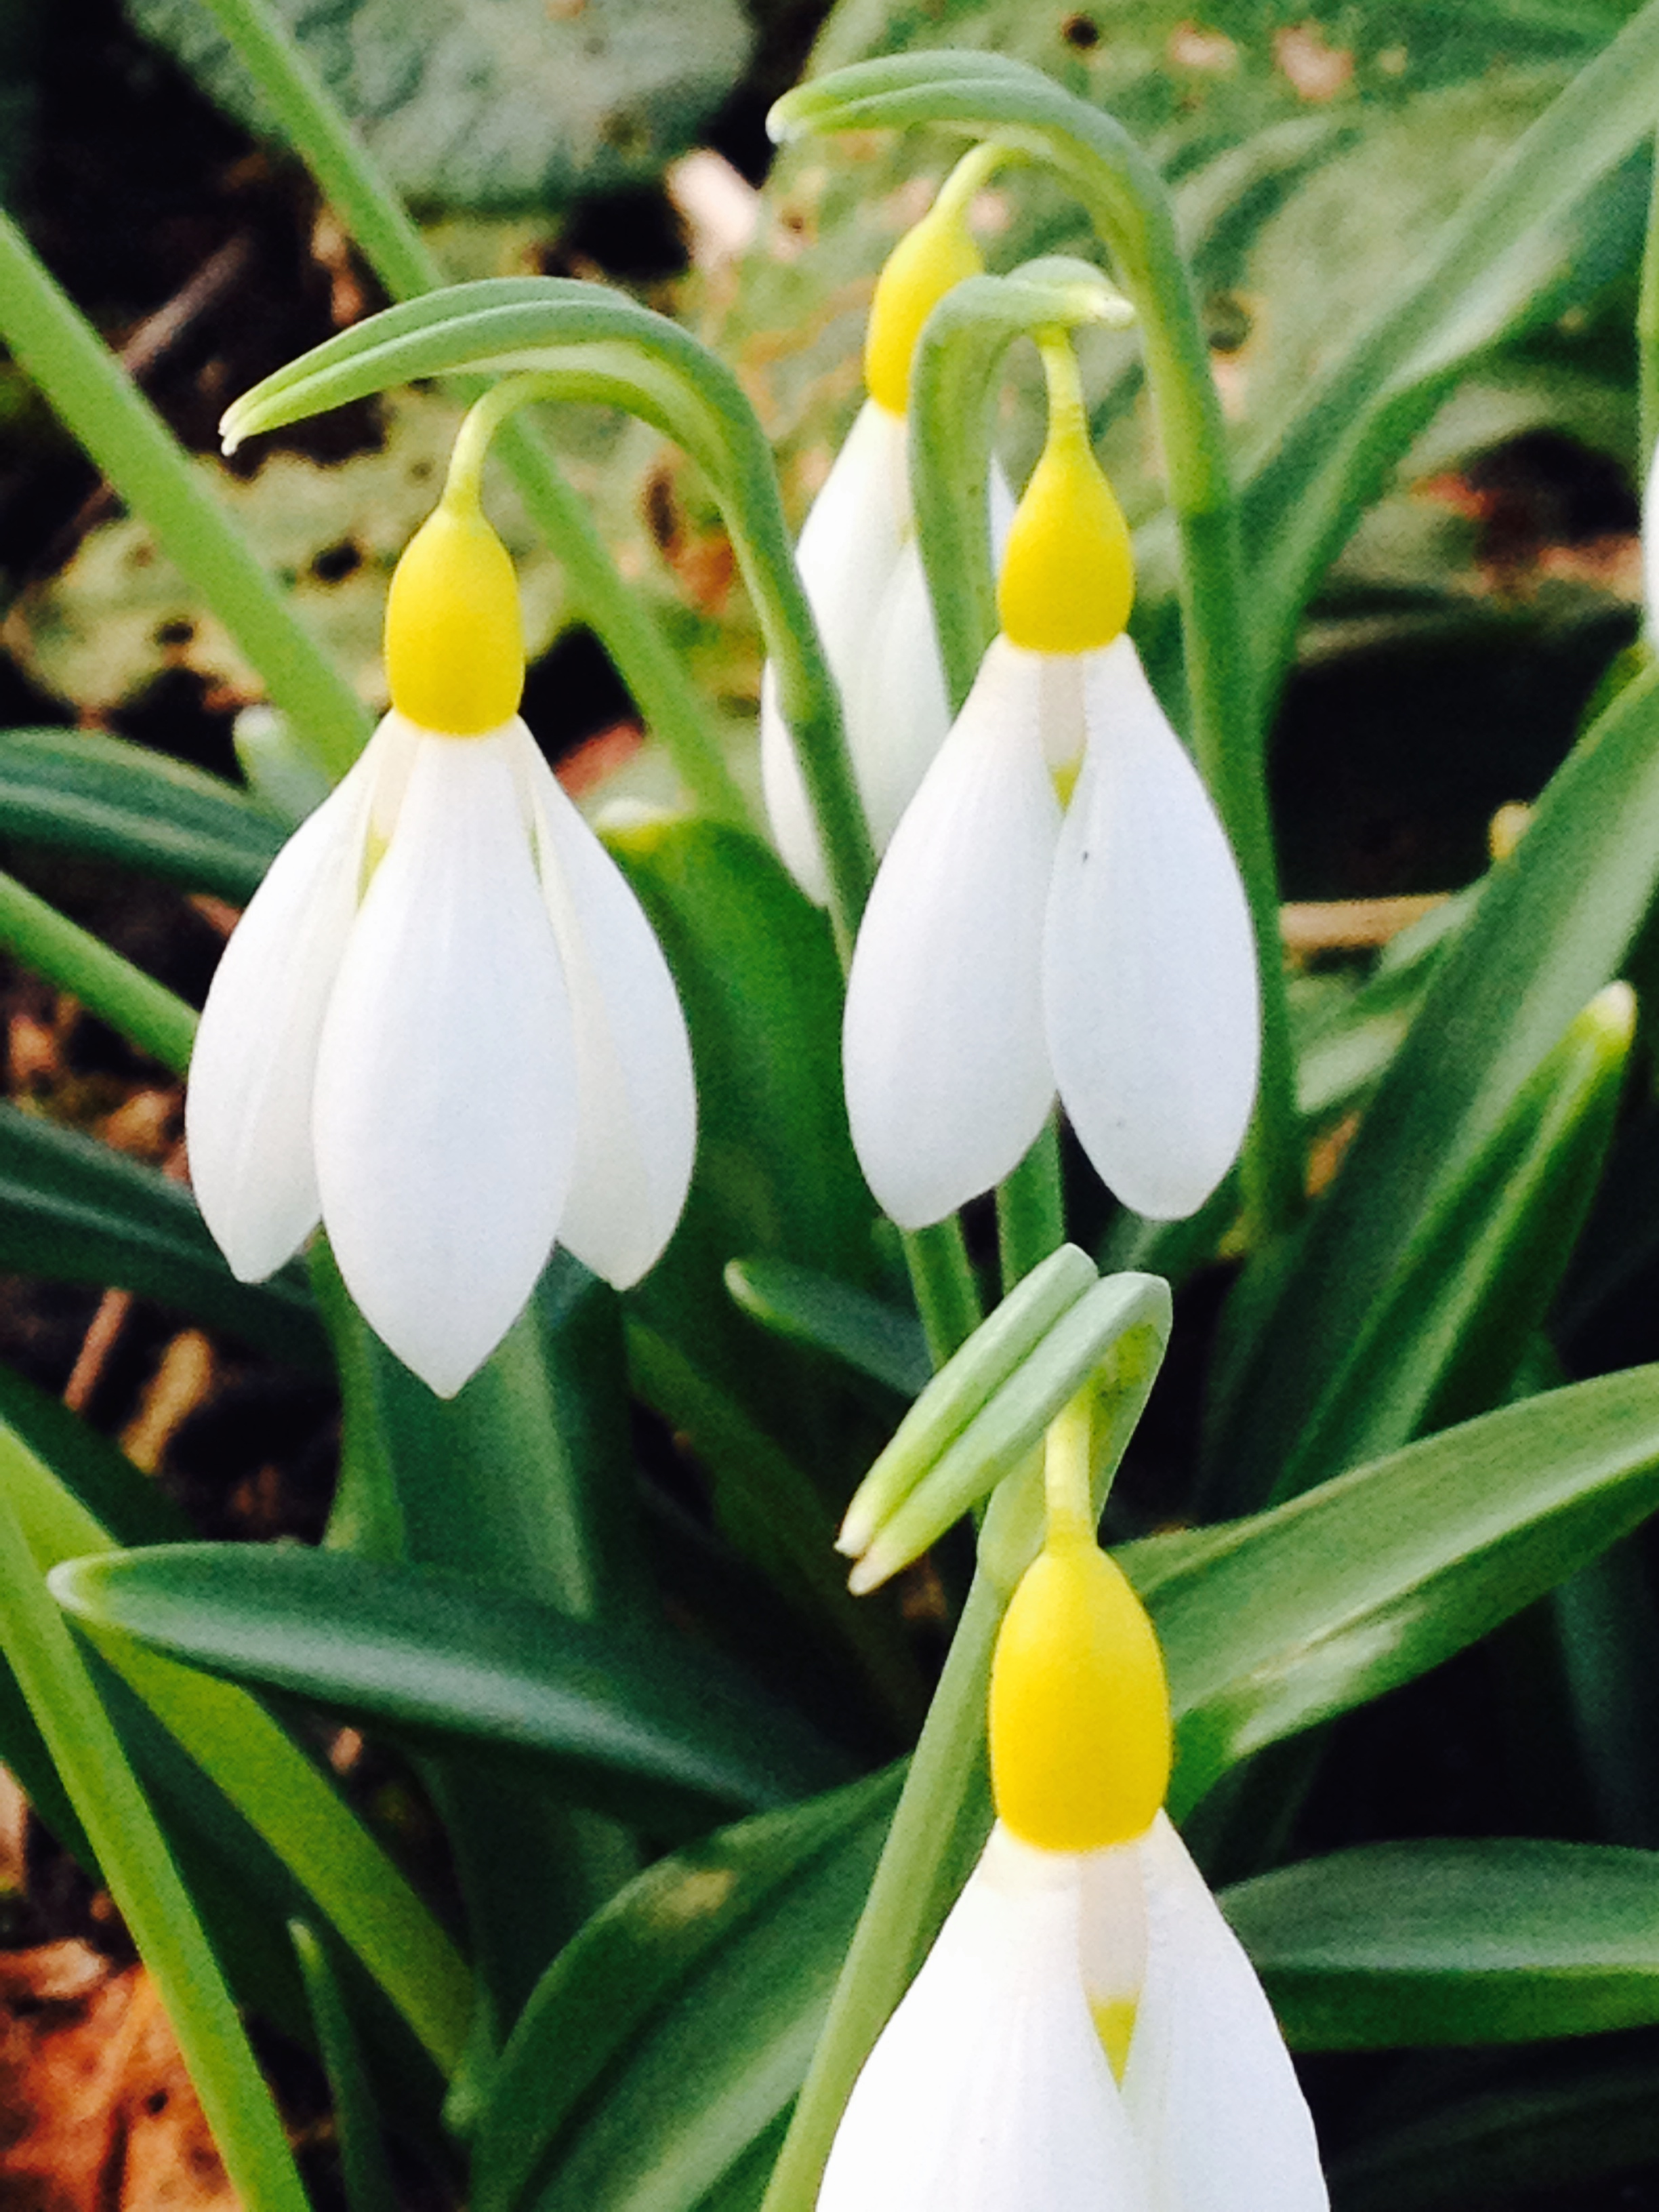 Snowdrop weekend 2019 16-17th February 11-4